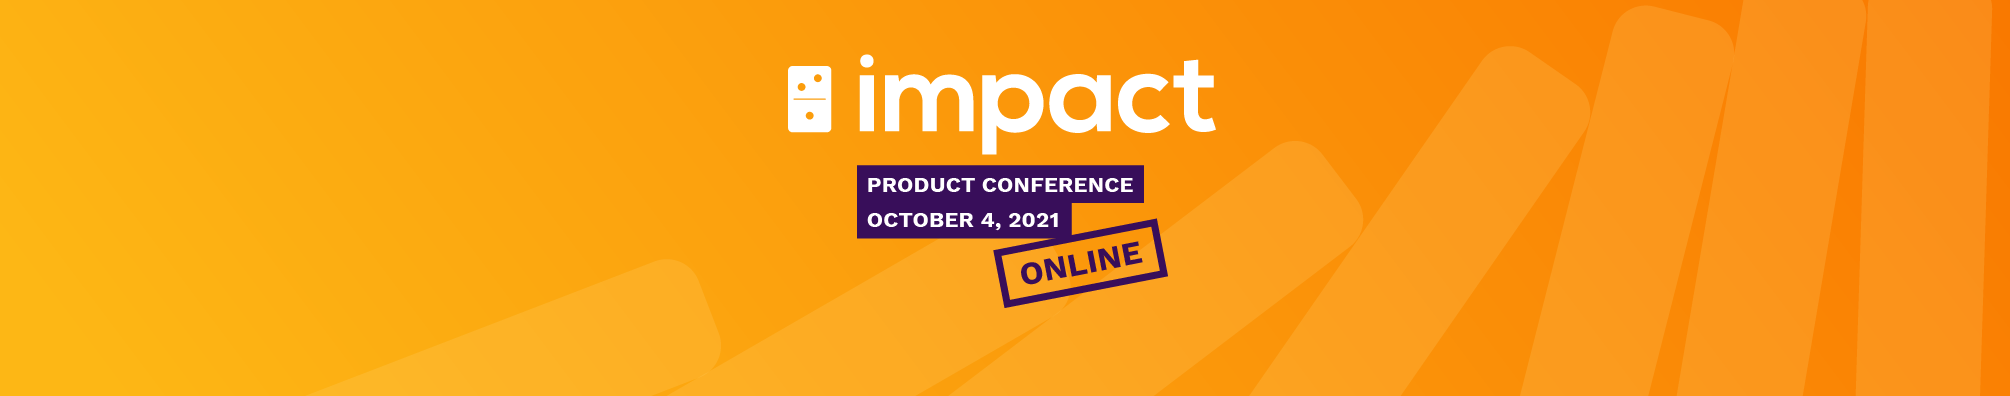 Impact Conference 2021